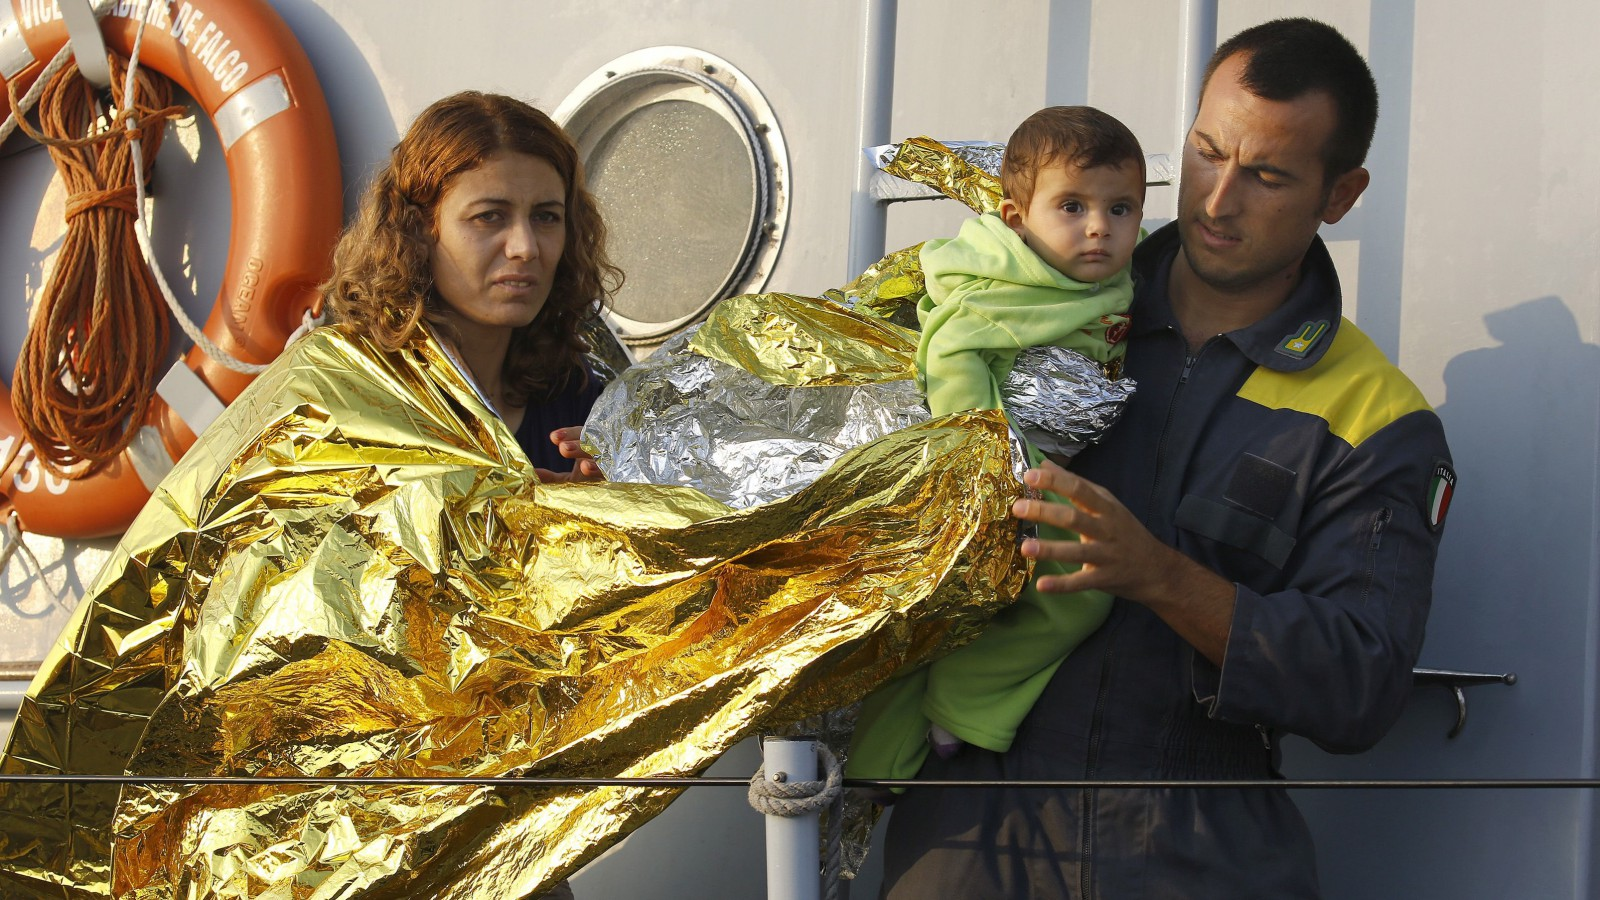 """An Italian coast guard officer helps Syrian refugees from Kobani in the port of Kos following a rescue mission off the Greek island of Kos August 10, 2015. An Italian Coast Guard vessel rescued 60 Syrian refugees drifting on a dinghy between Greece and Turkey.United Nations refugee agency (UNHCR) called on Greece to take control of the """"total chaos"""" on Mediterranean islands, where thousands of migrants have landed. About 124,000 have arrived this year by sea, many via Turkey, according to Vincent Cochetel, UNHCR director for Europe.  REUTERS/Yannis Behrakis - RTX1NQR8"""